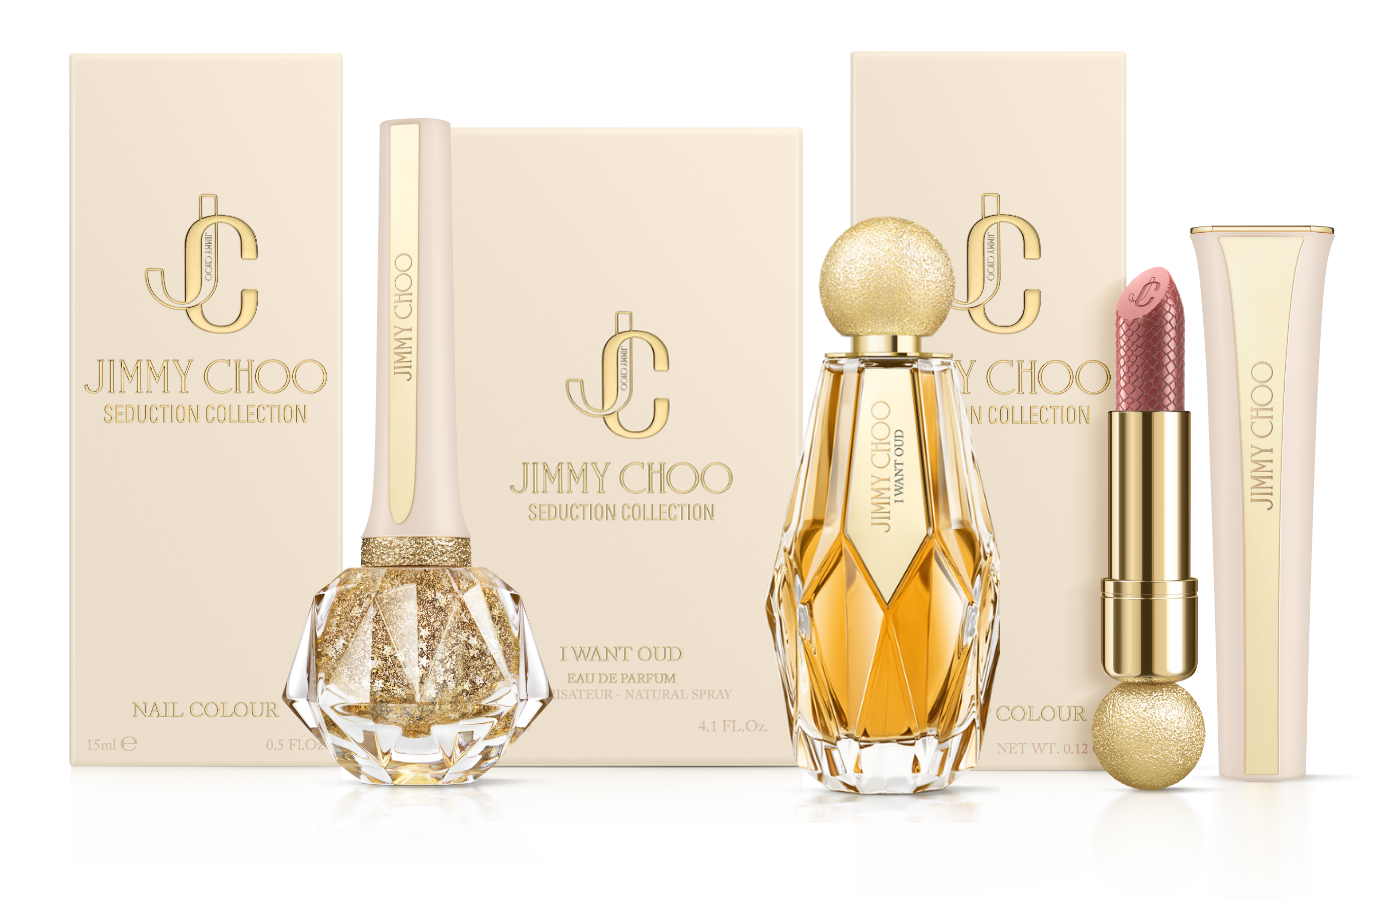 Jimmy Choo launches first cosmetics